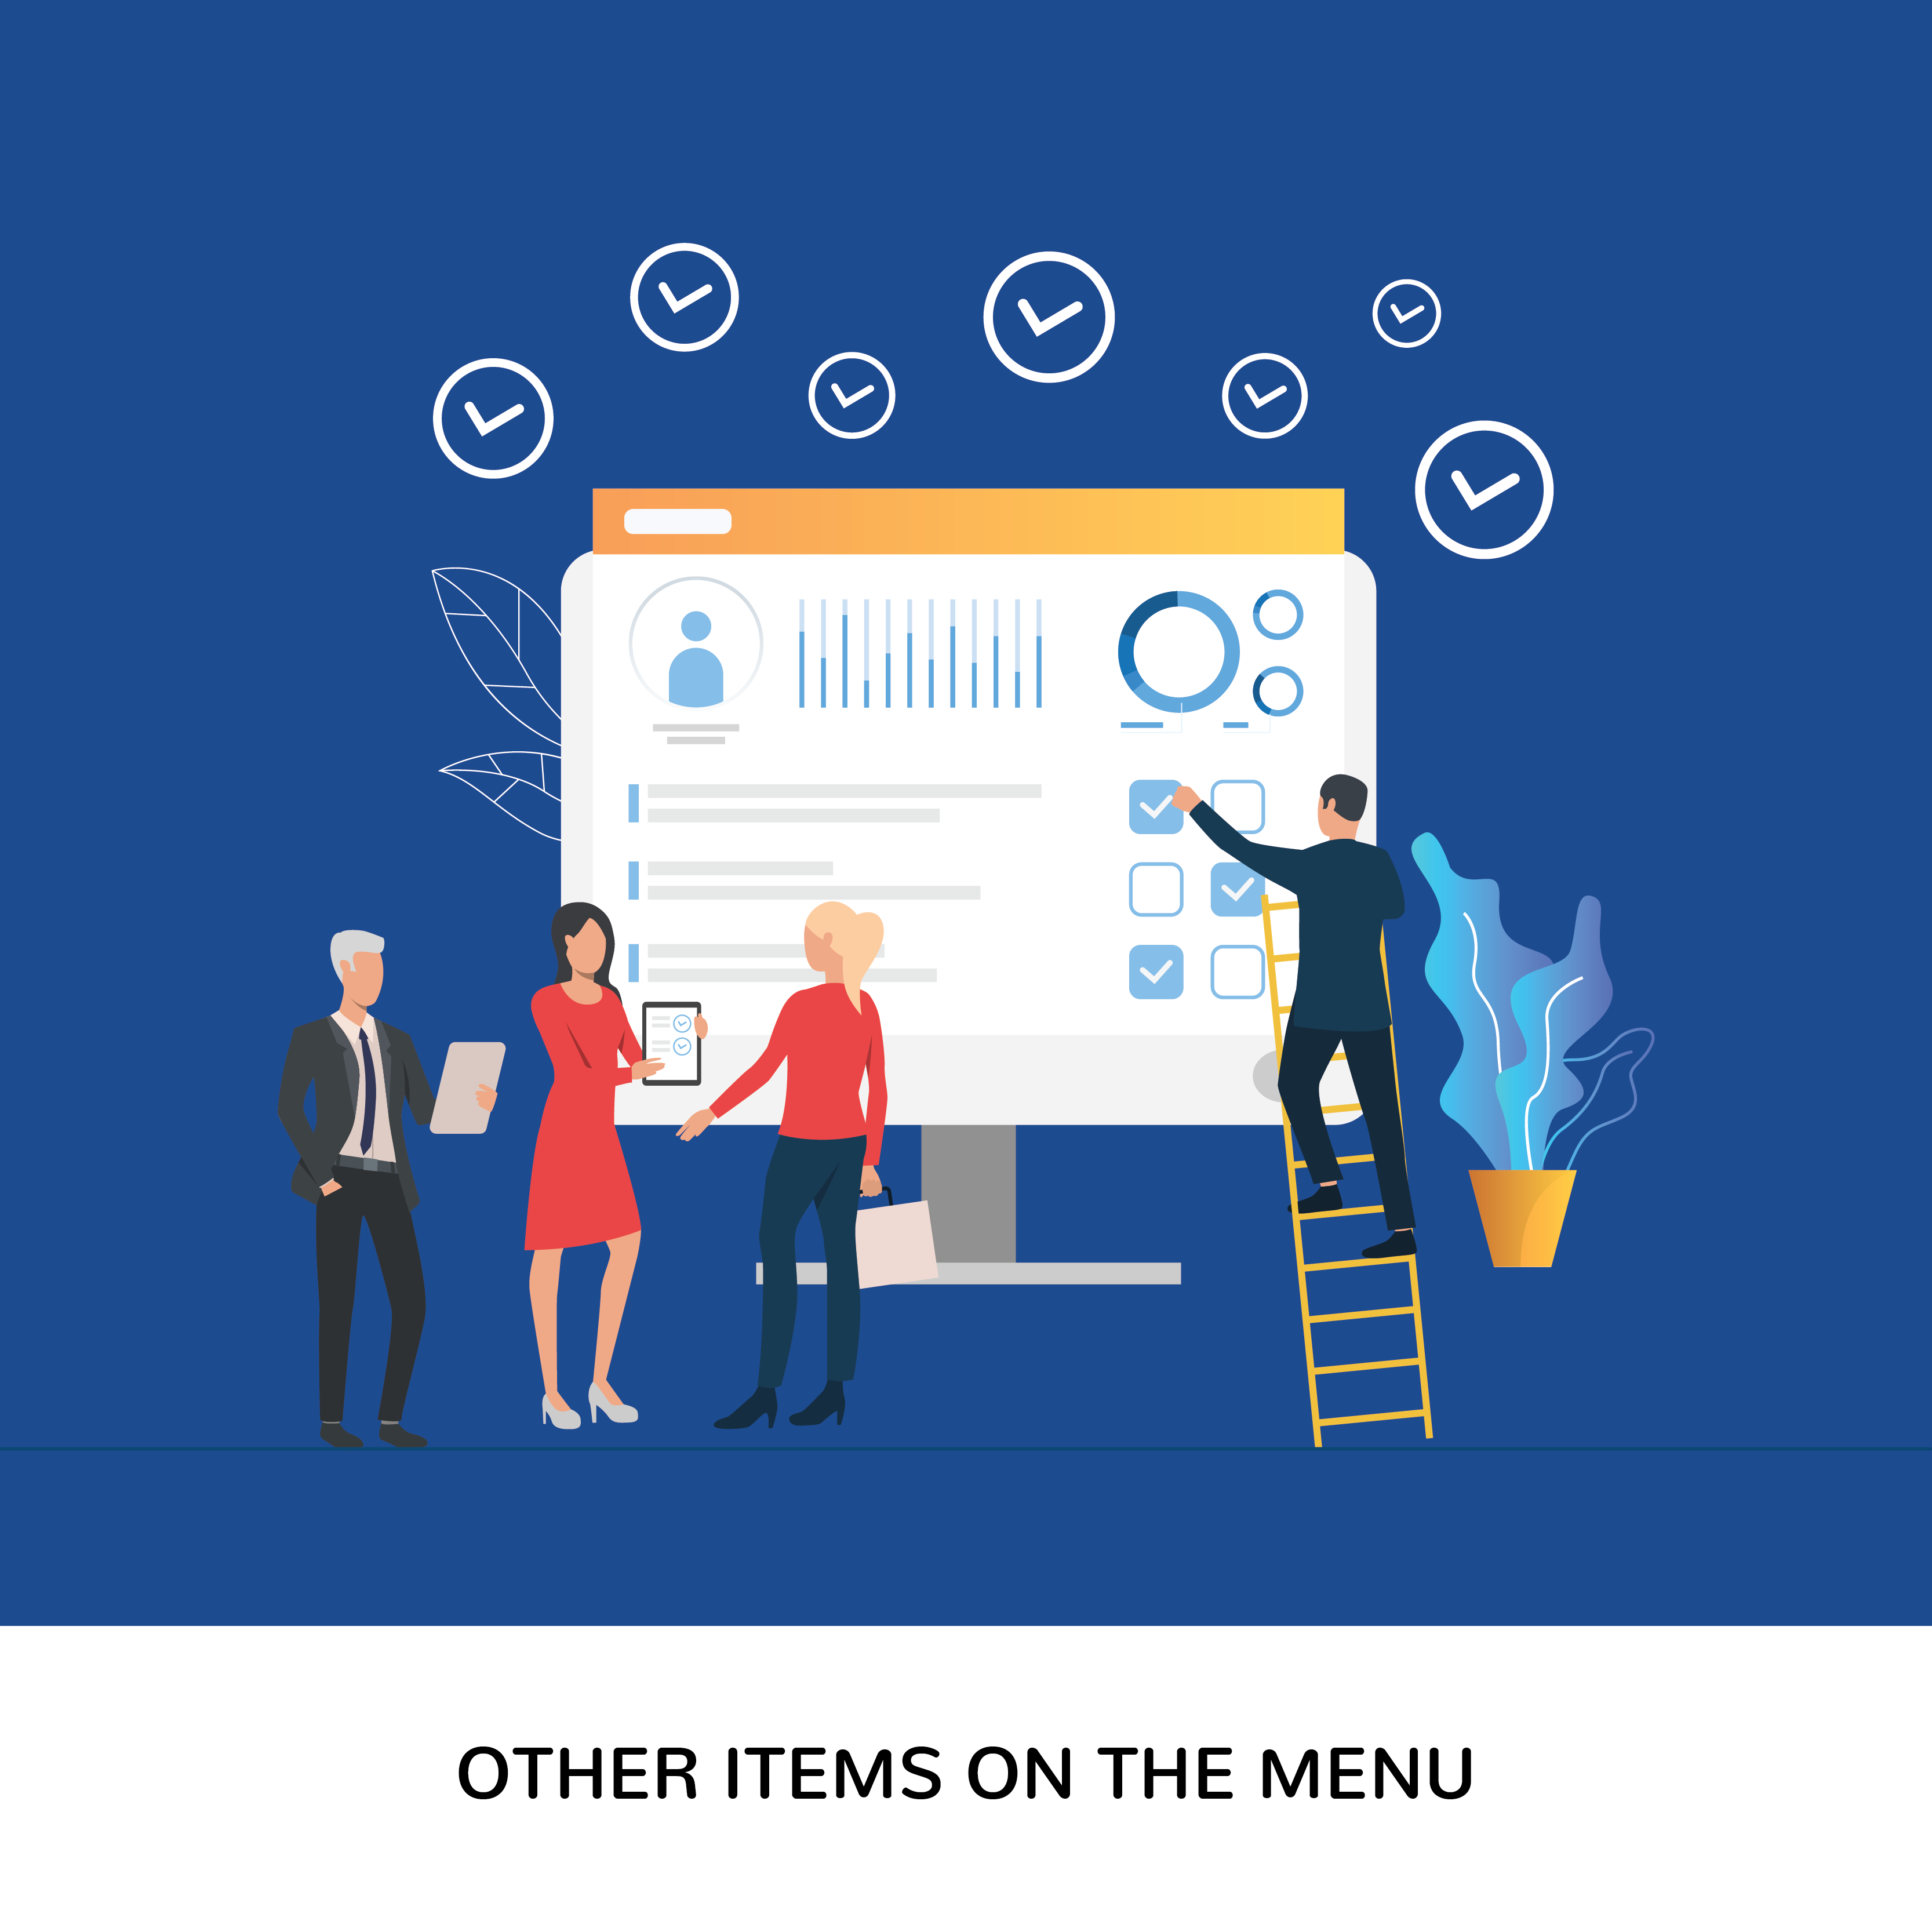 When going deep in the business insights you will get a number of items on the menu